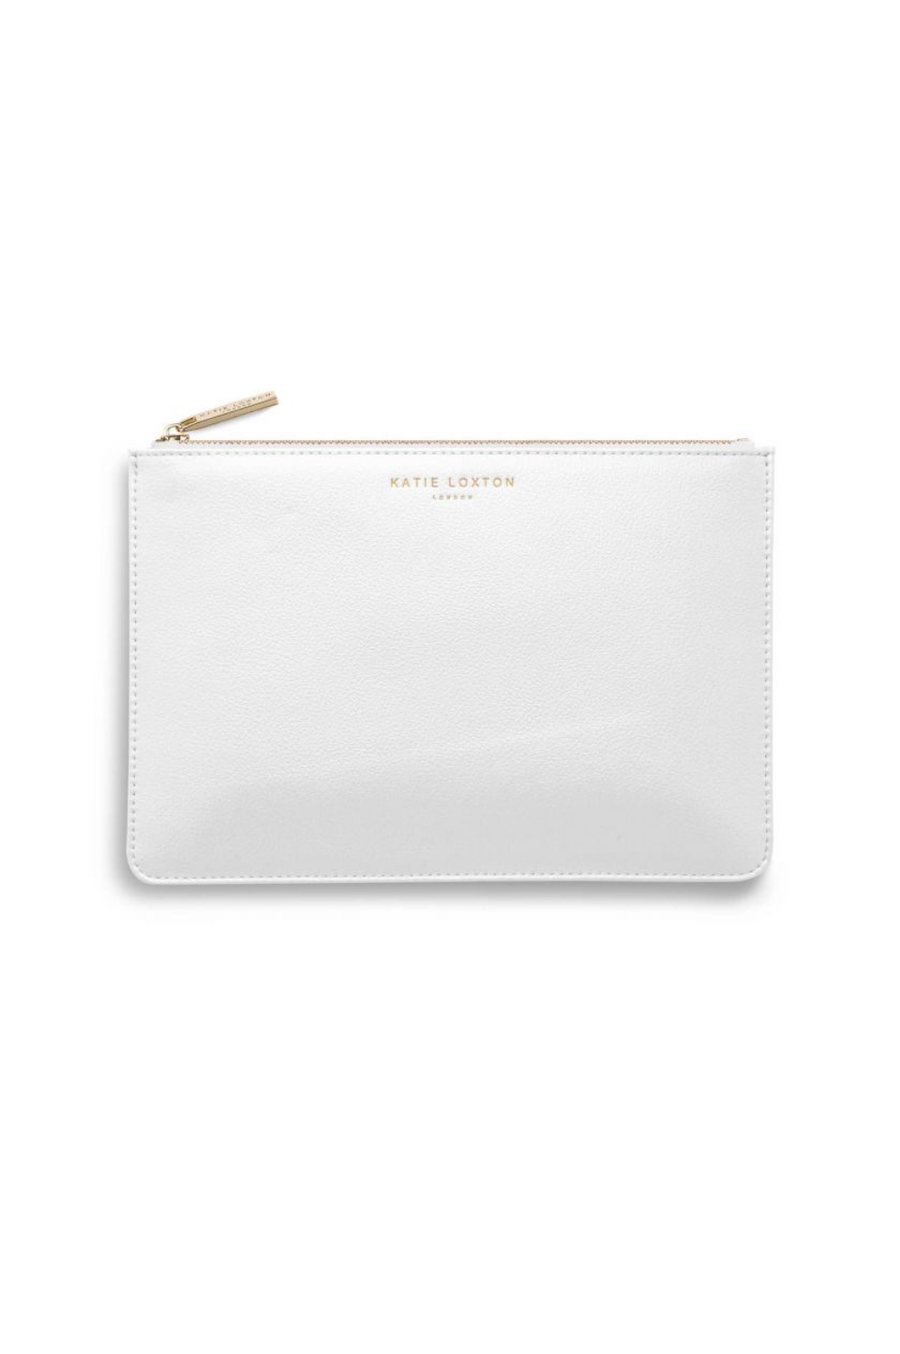 Katie Loxton 'Beautiful Bride' Perfect Pouch Gift Set